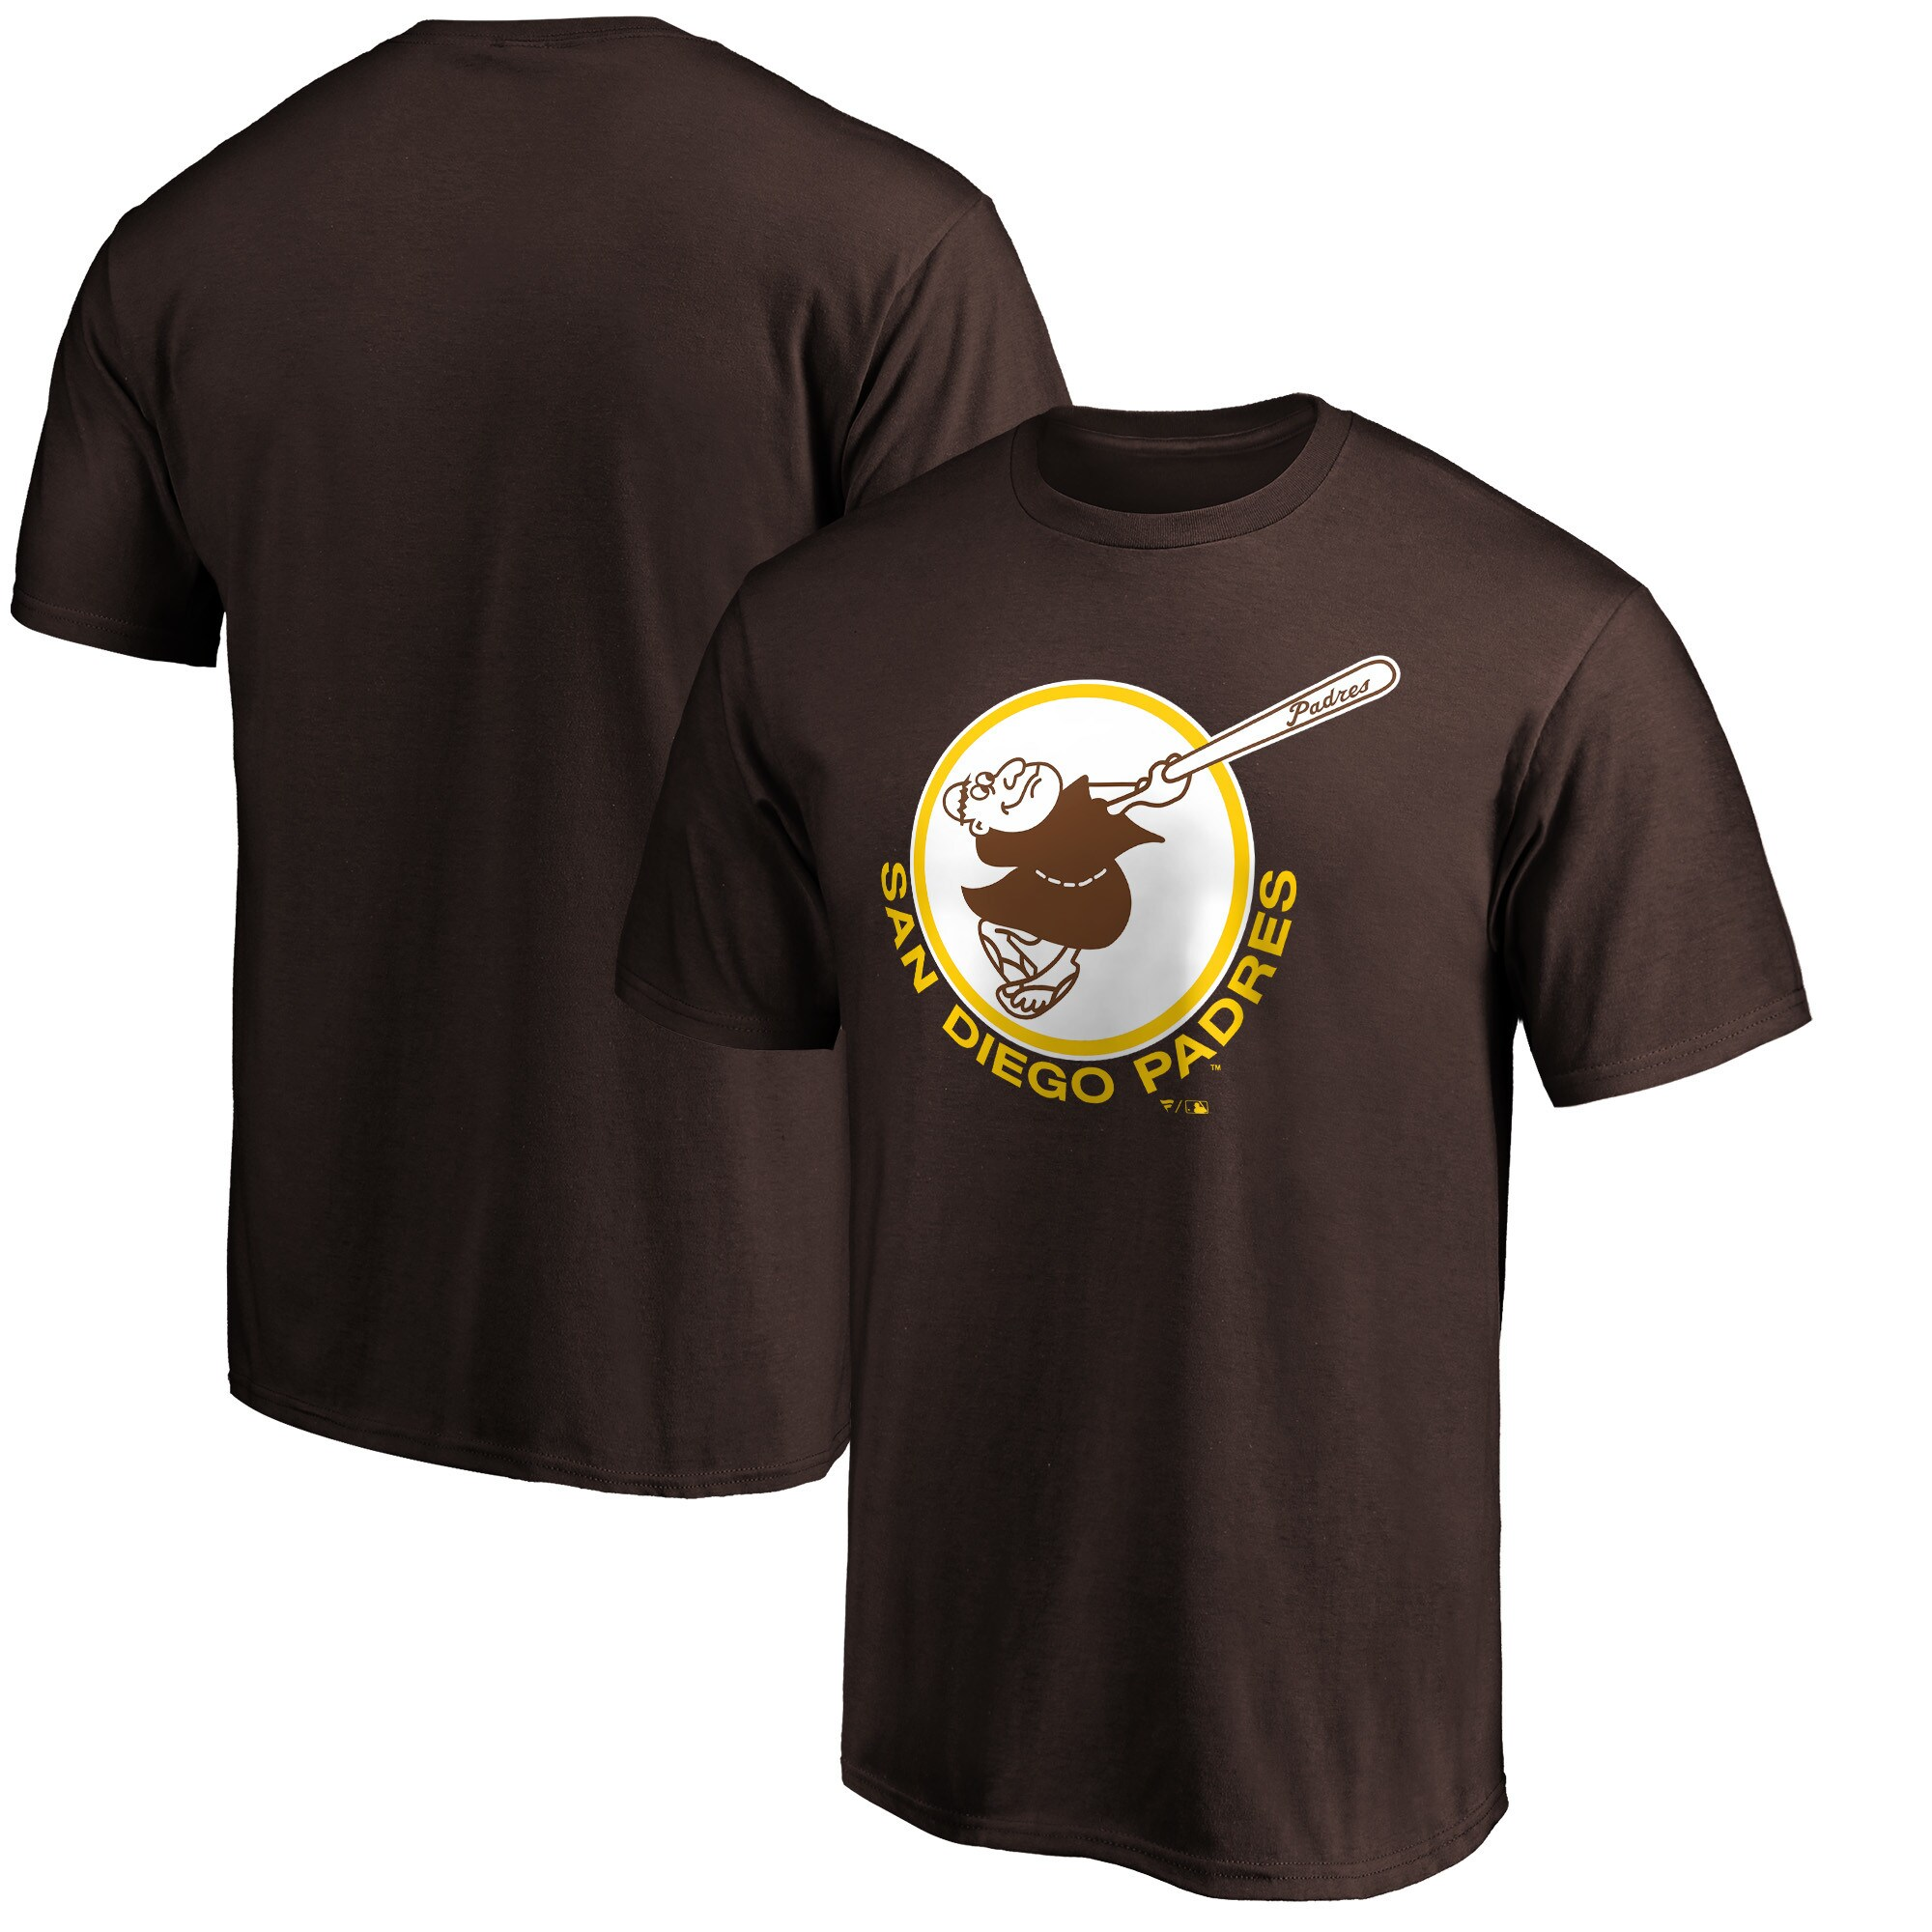 San Diego Padres Fanatics Branded Cooperstown Collection Forbes Team T-Shirt - Brown